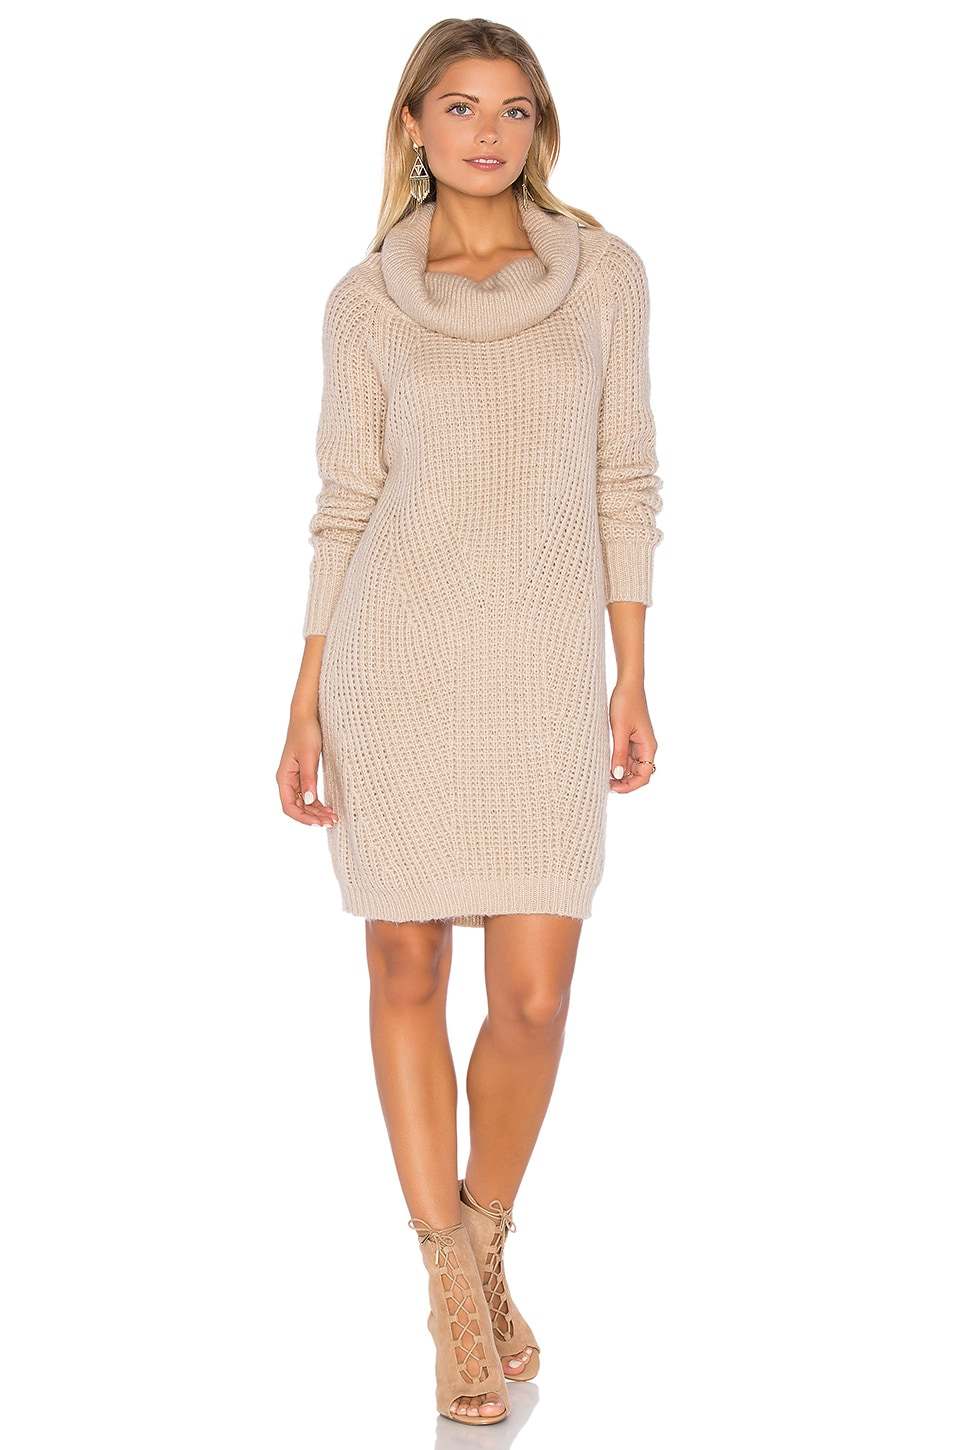 MLM Label Generation Knit Sweater Dress in Dusty Blush